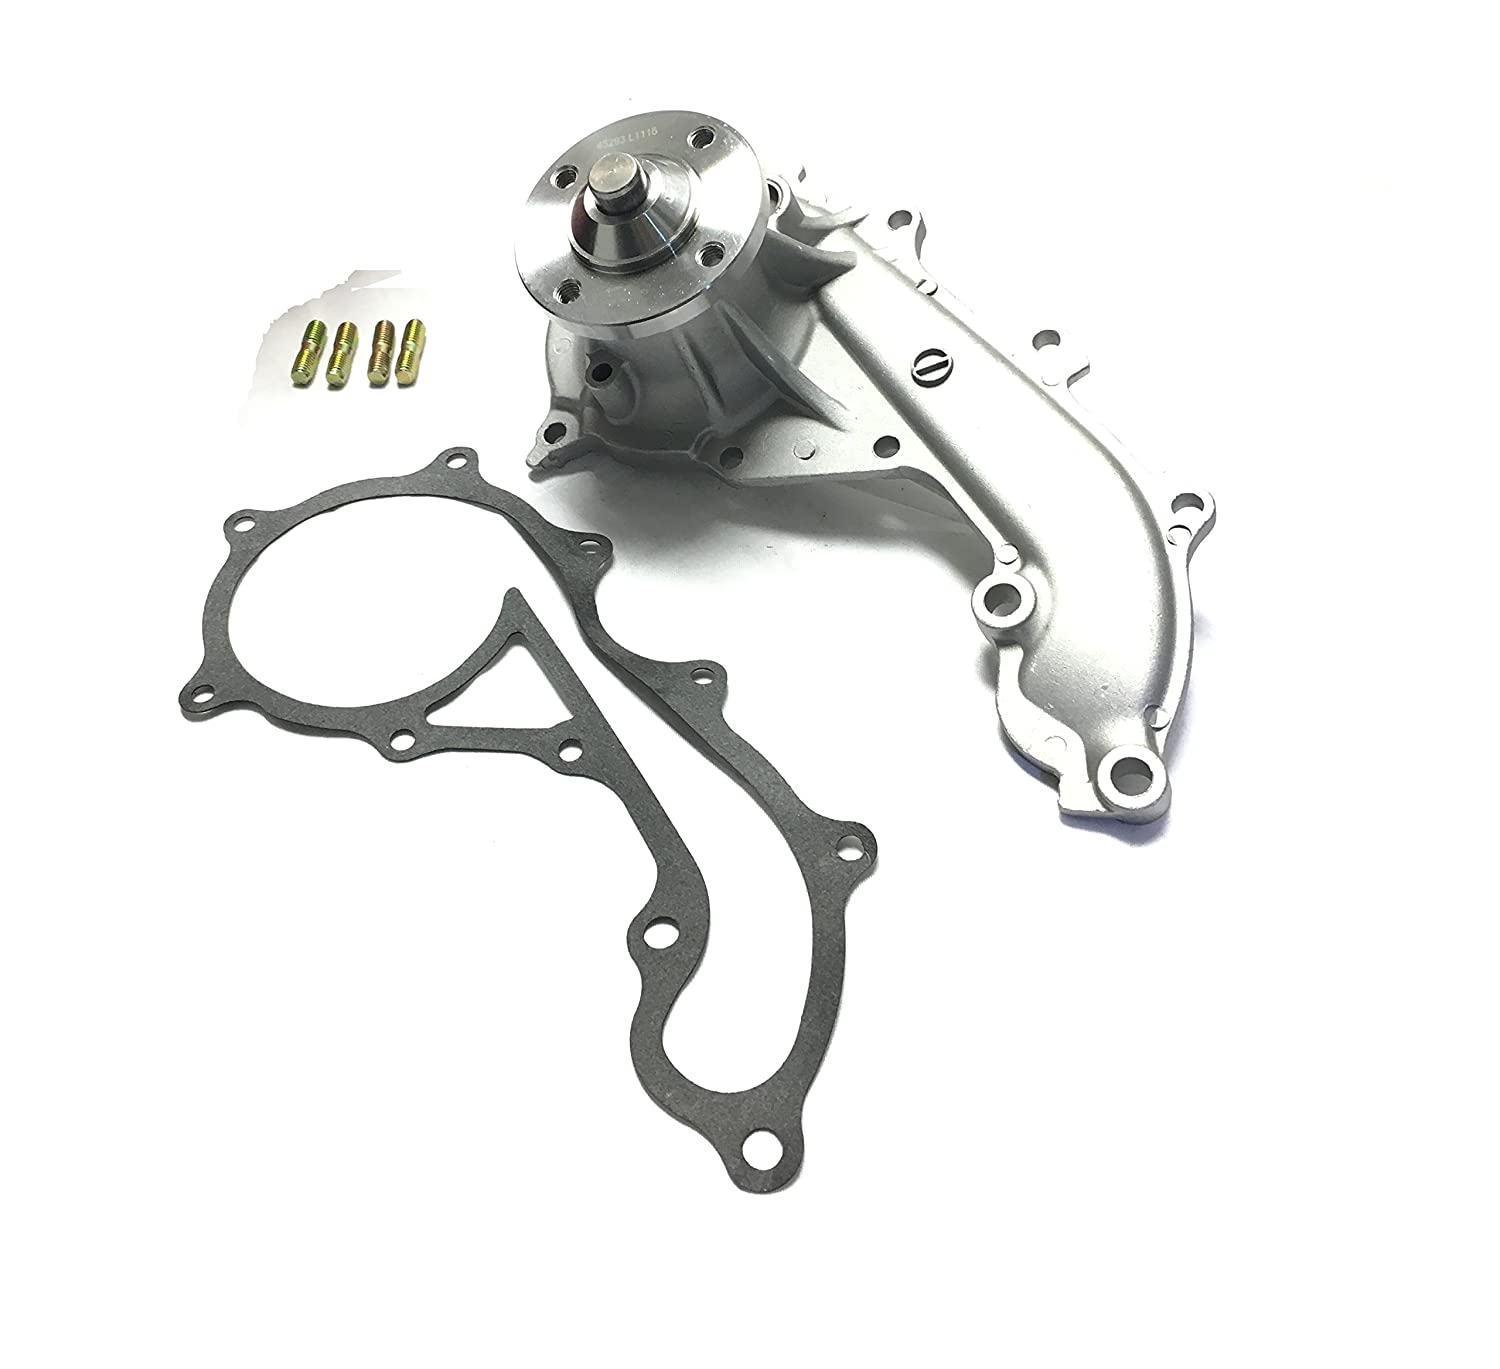 Diamond Power Water Pump Works With Toyota 4runner T100 1992 Tacoma 24l 27l Dohc 1994 2009 Automotive